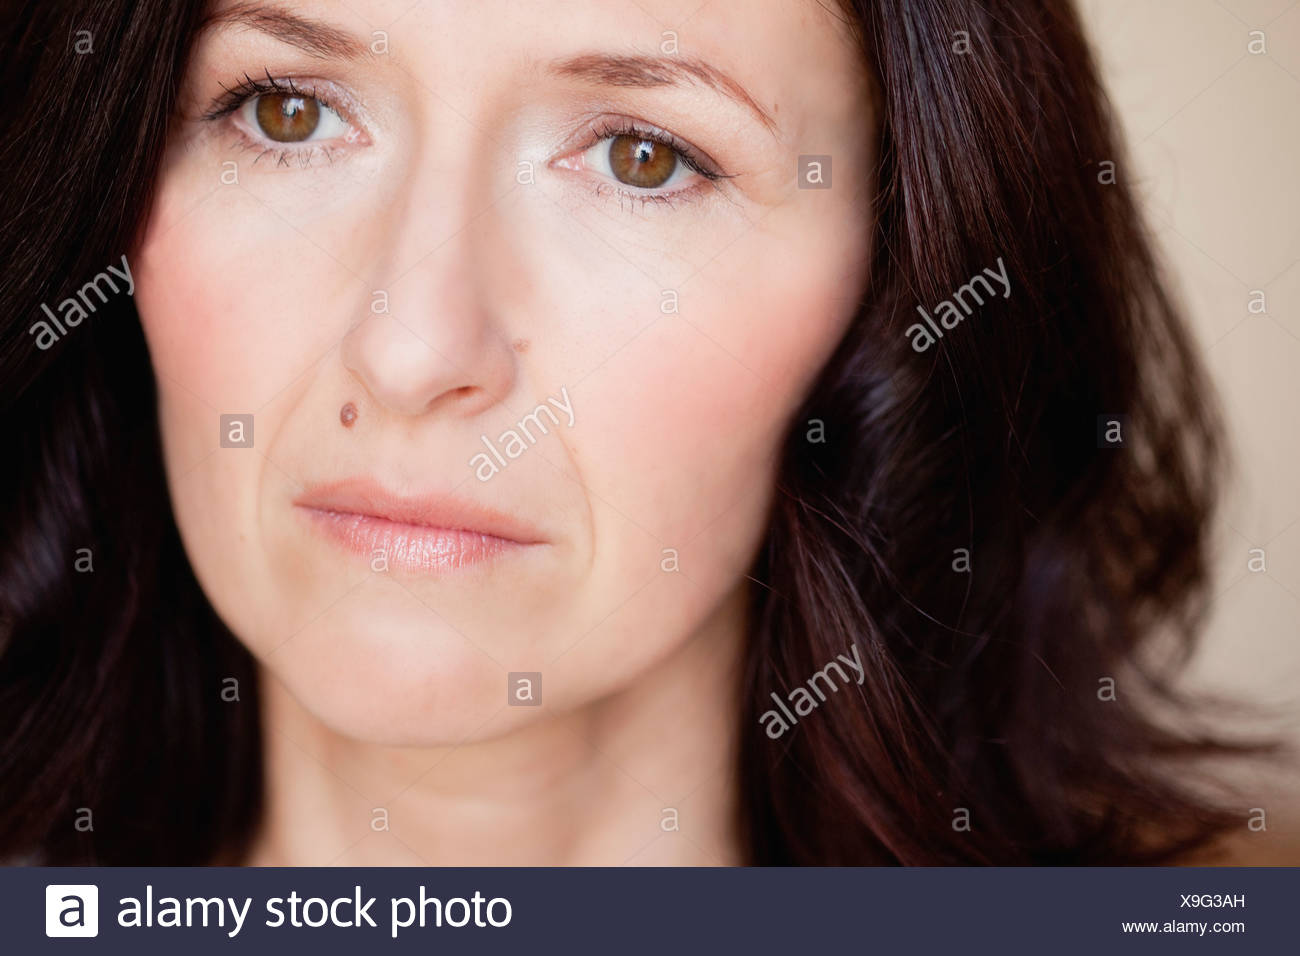 woman looking into distance - Stock Image